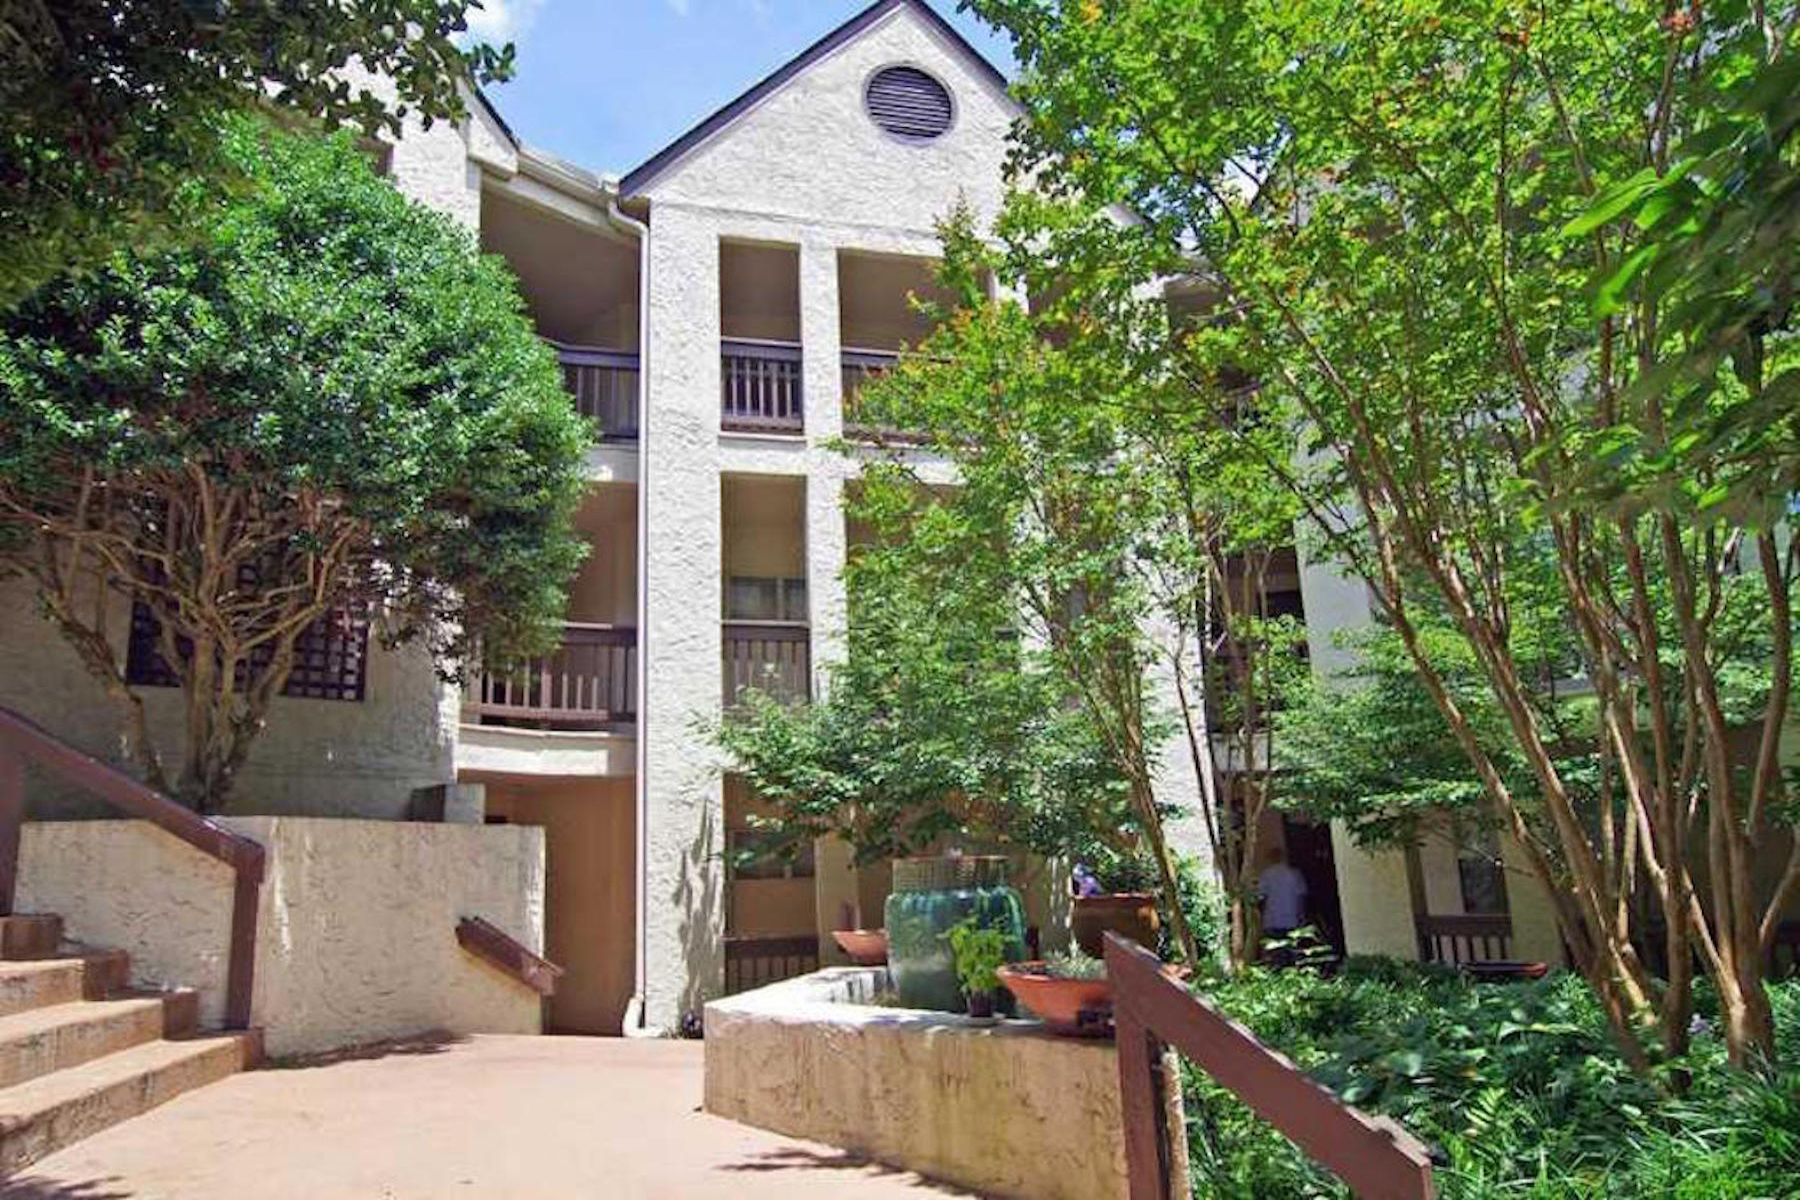 Condominium for Sale at Great Decatur Condo next to Emory, the CDC and close to Decatur Square 477 Sherman Way Decatur, Georgia 30033 United States